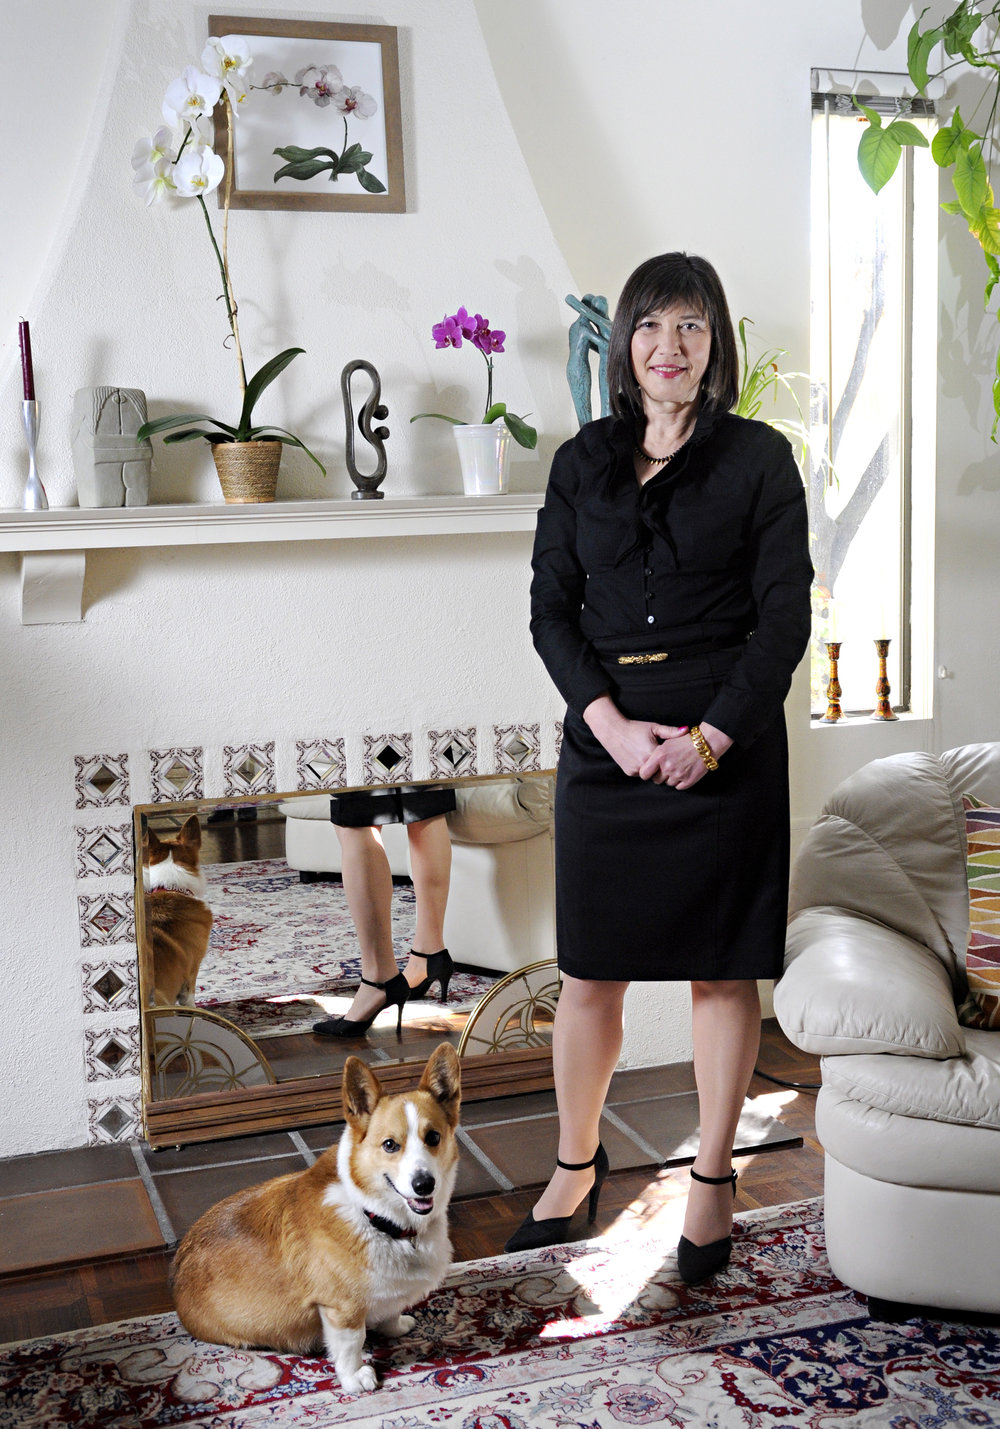 Female business owner portrait with dog in her home taken by Morgan Petroski Photography, located in Montreal.